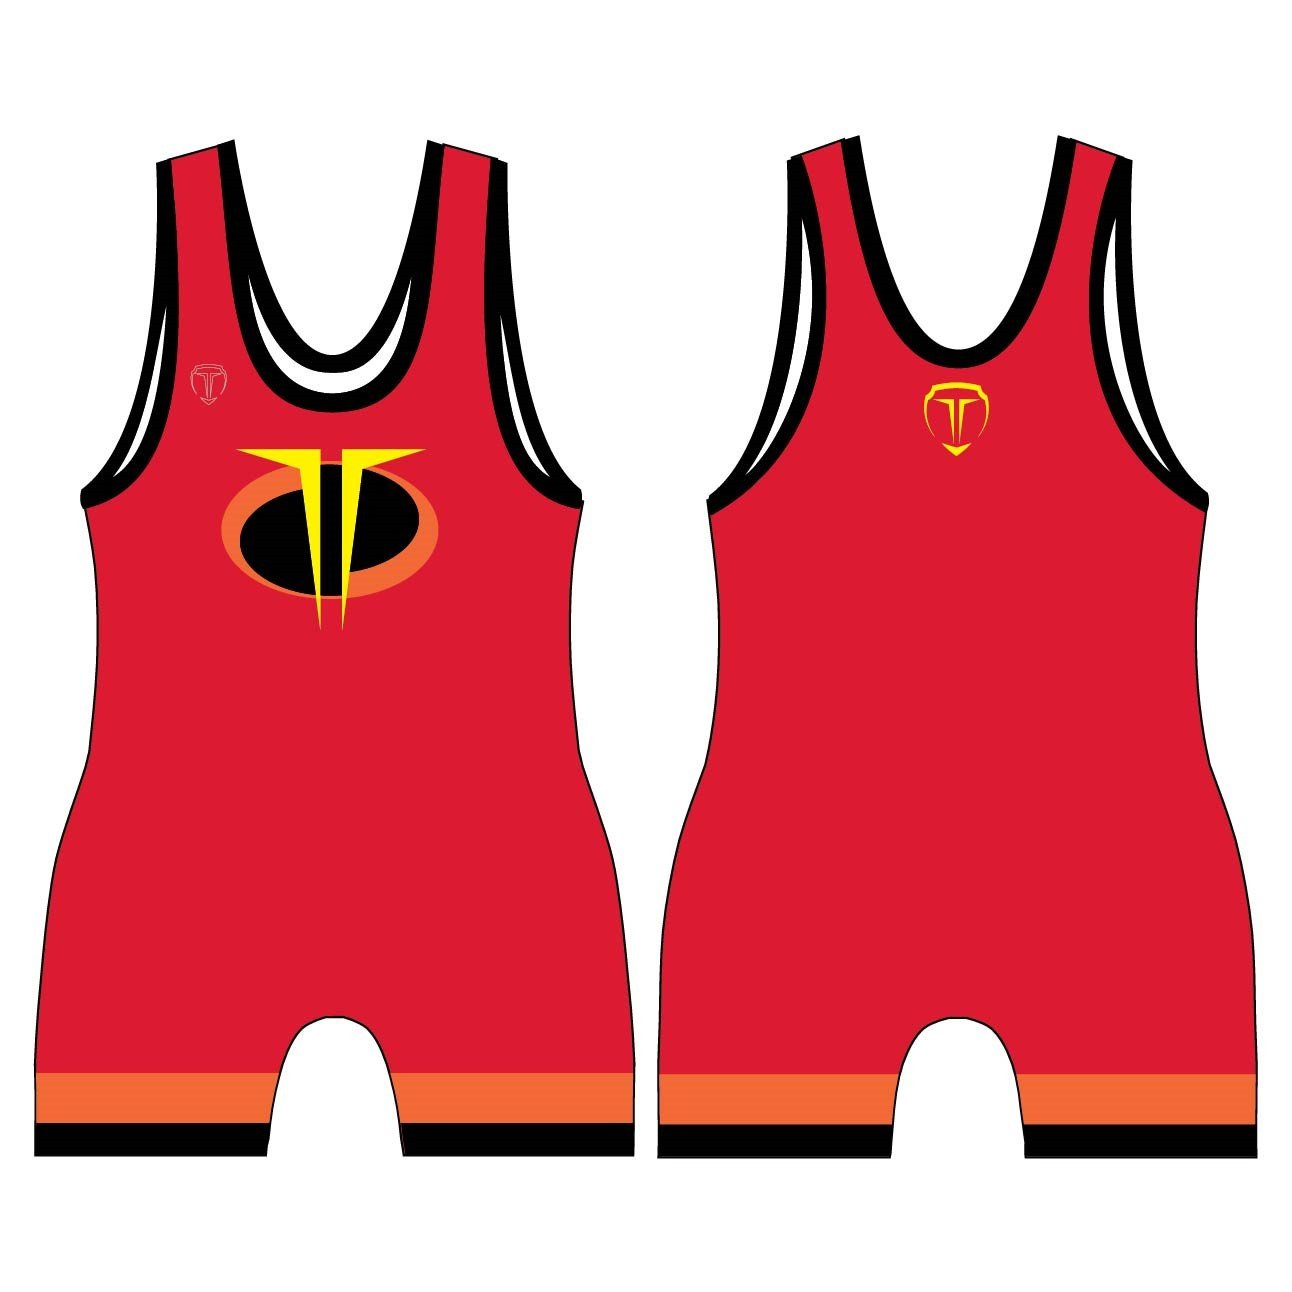 Wrestling clipart uniform. The supers singlet made